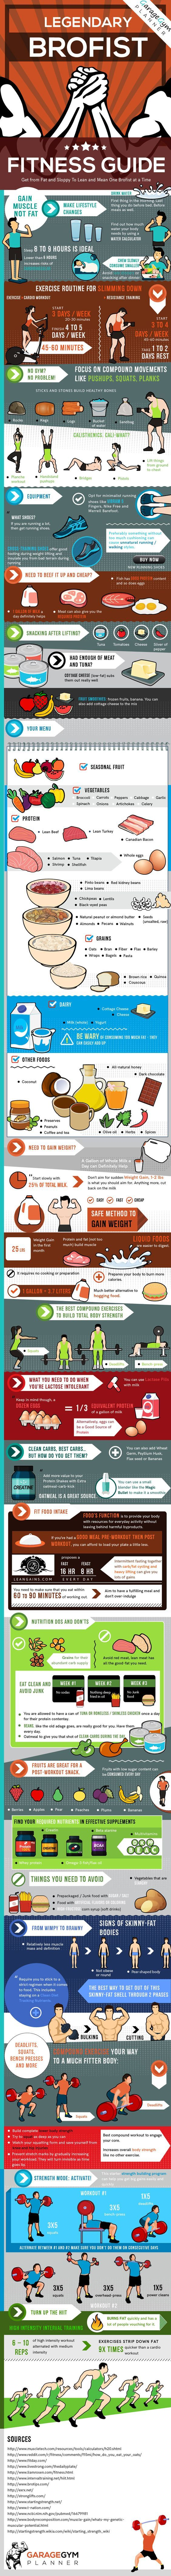 Compound Exercises and Nutrition Plan for Men - Bodybuilding Infographic